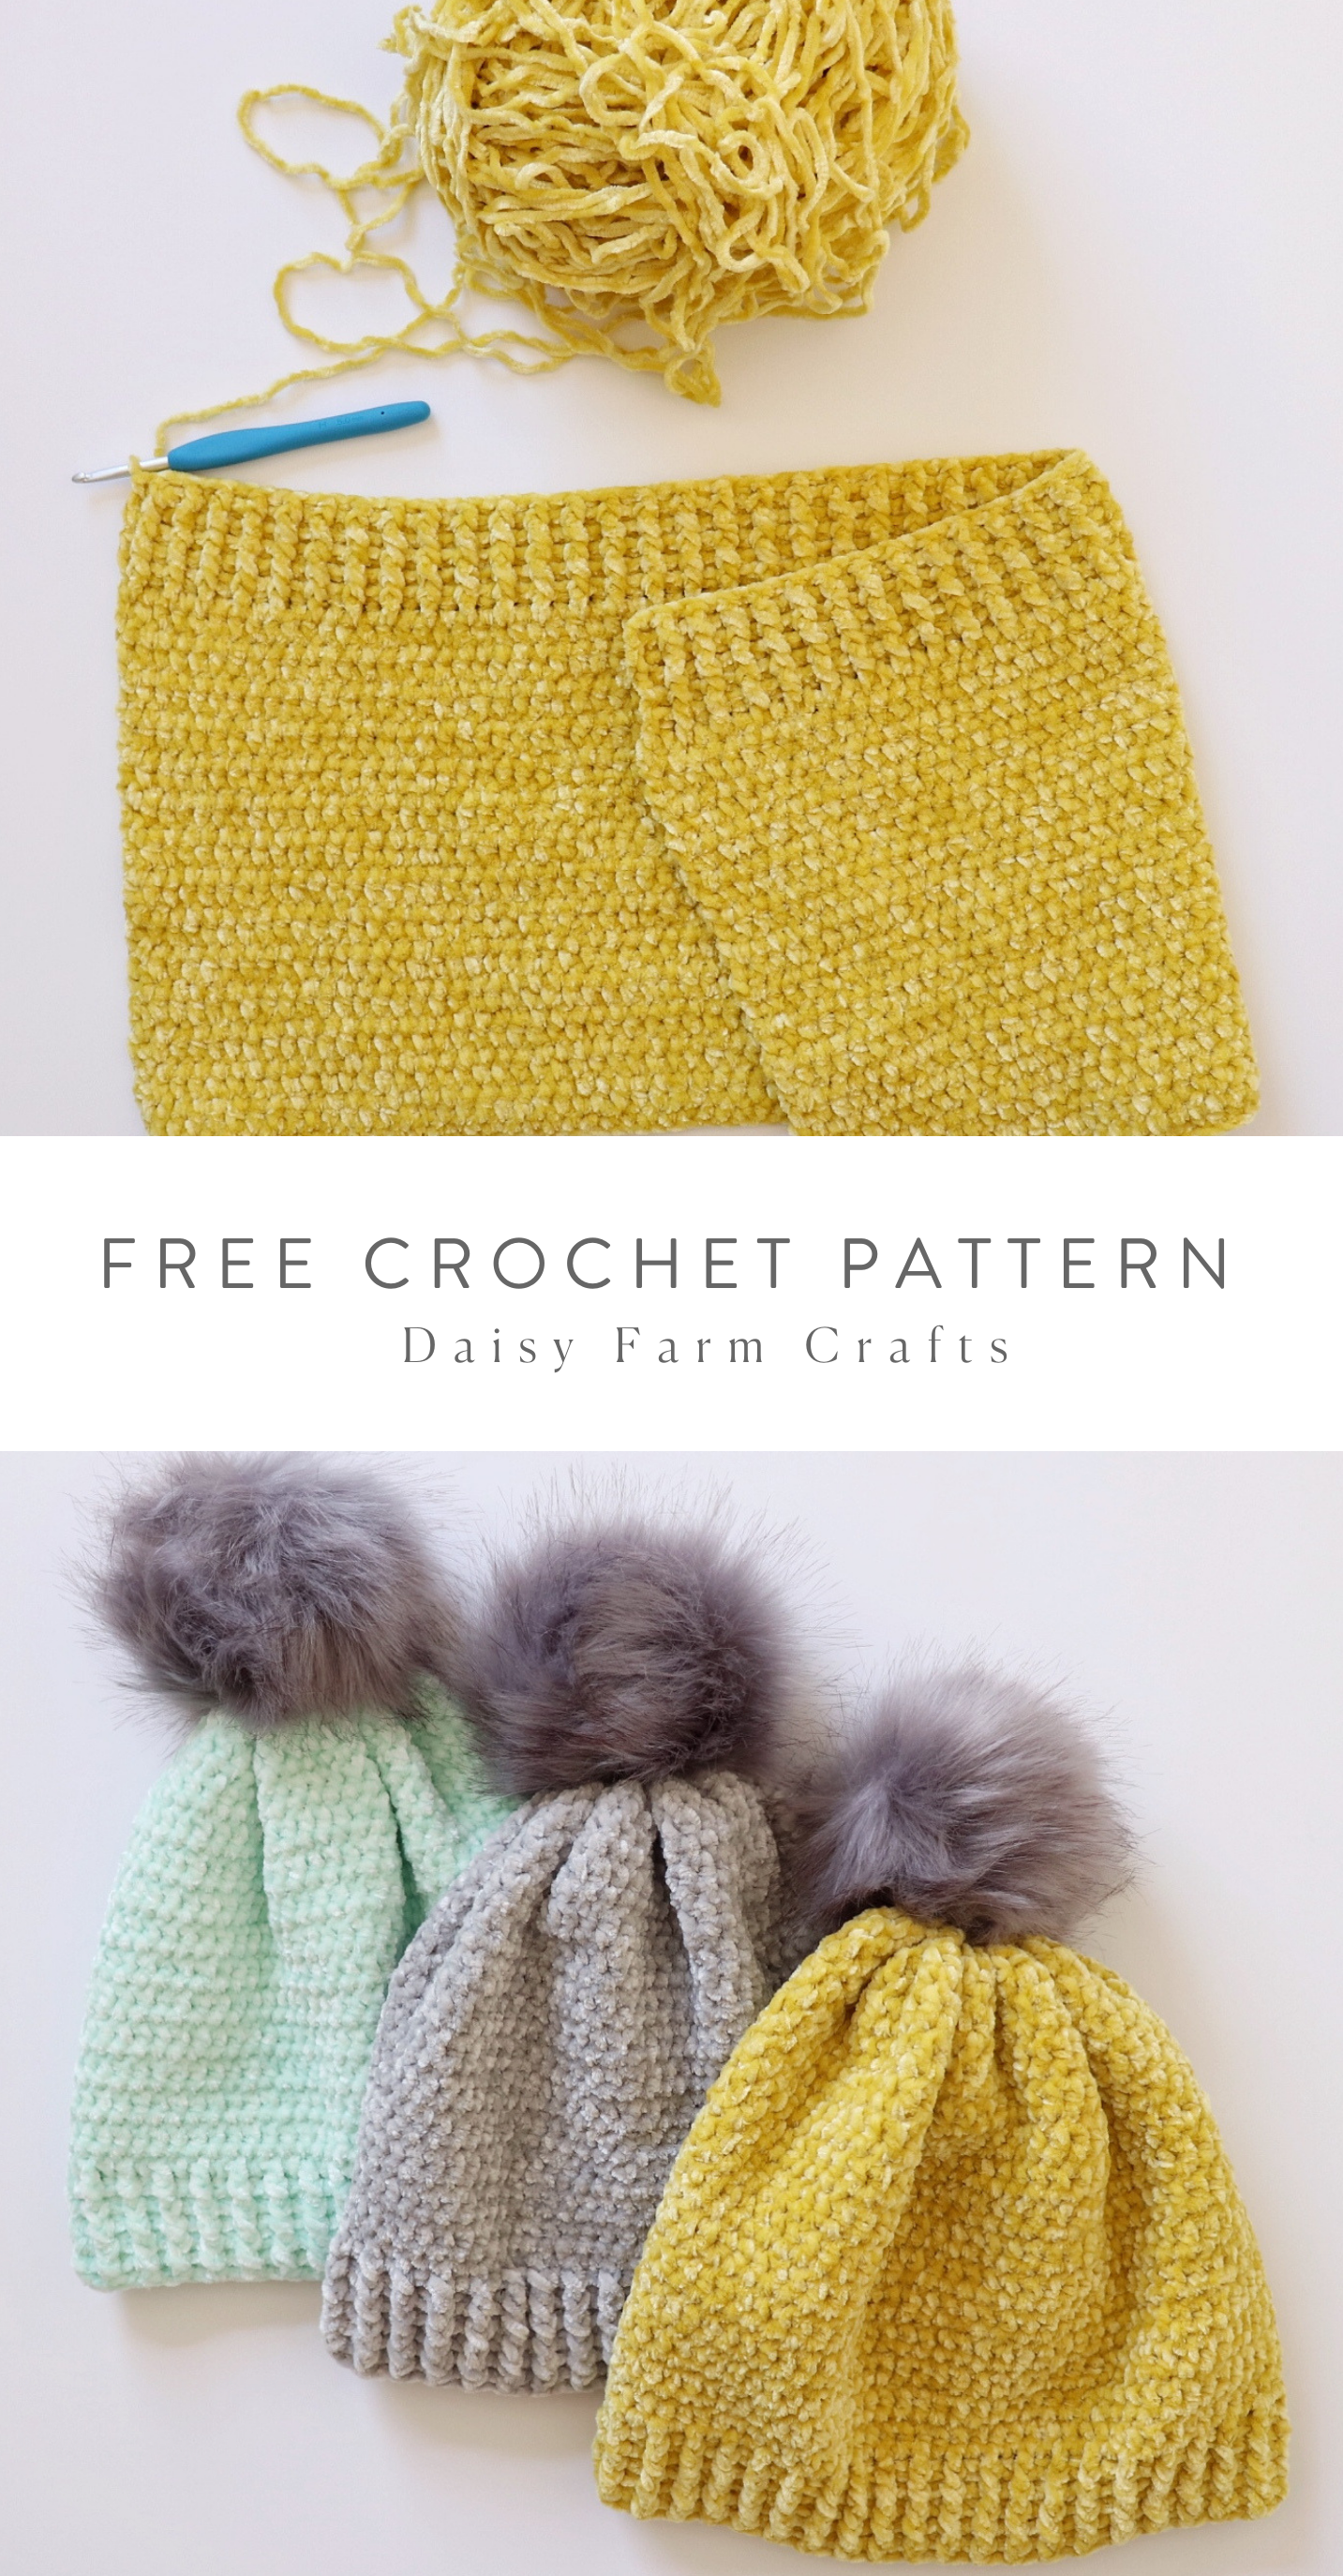 Free Crochet Pattern - Velvet Winter Hats